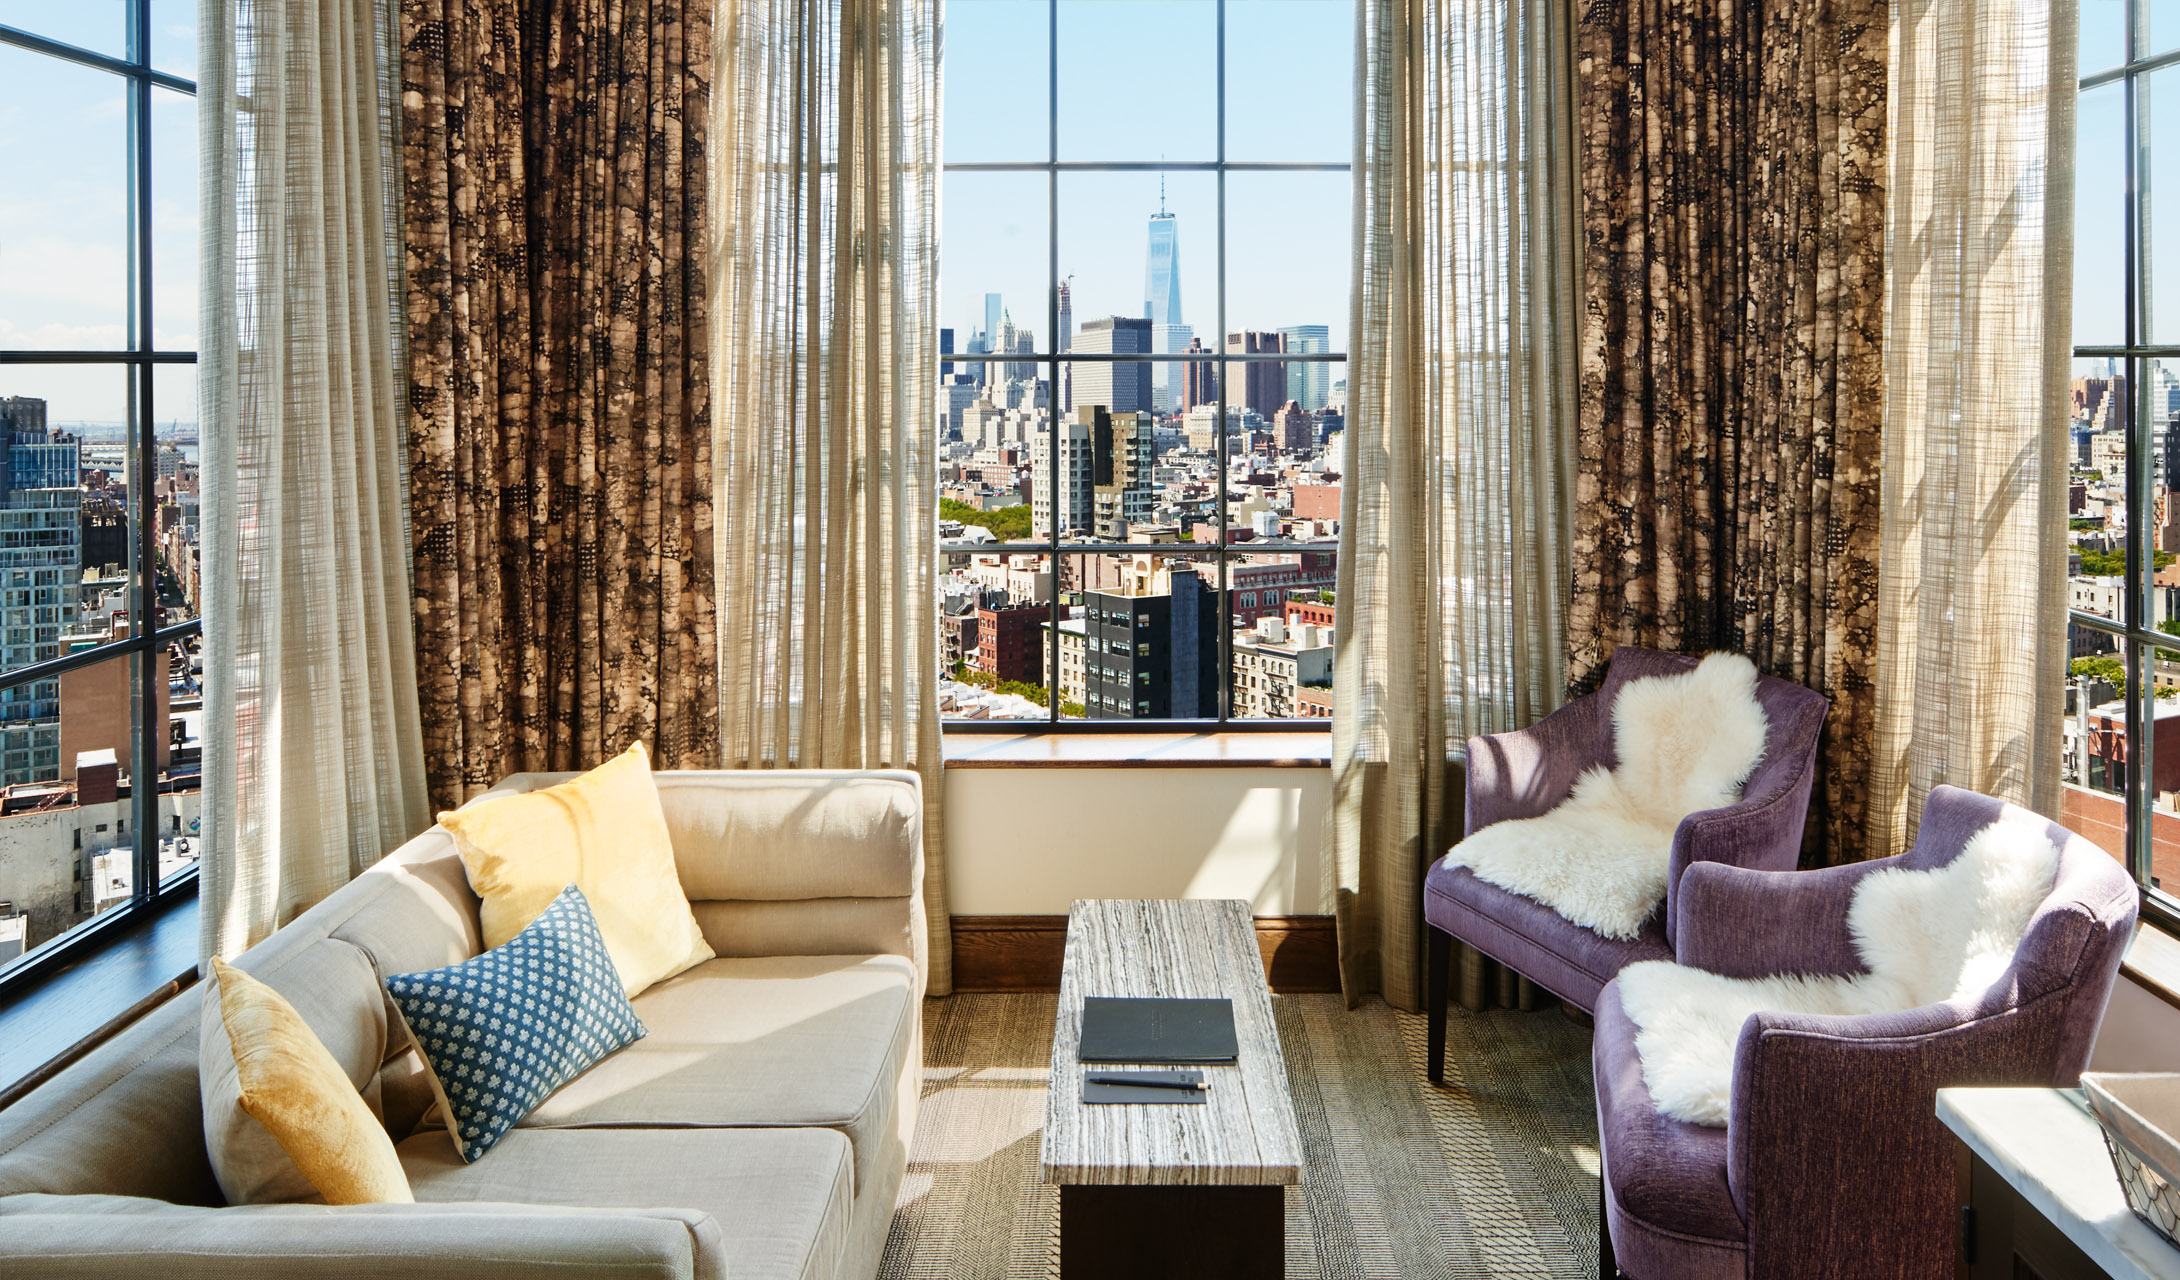 The ludlow hotel lower east side new york city usa for Designhotel q